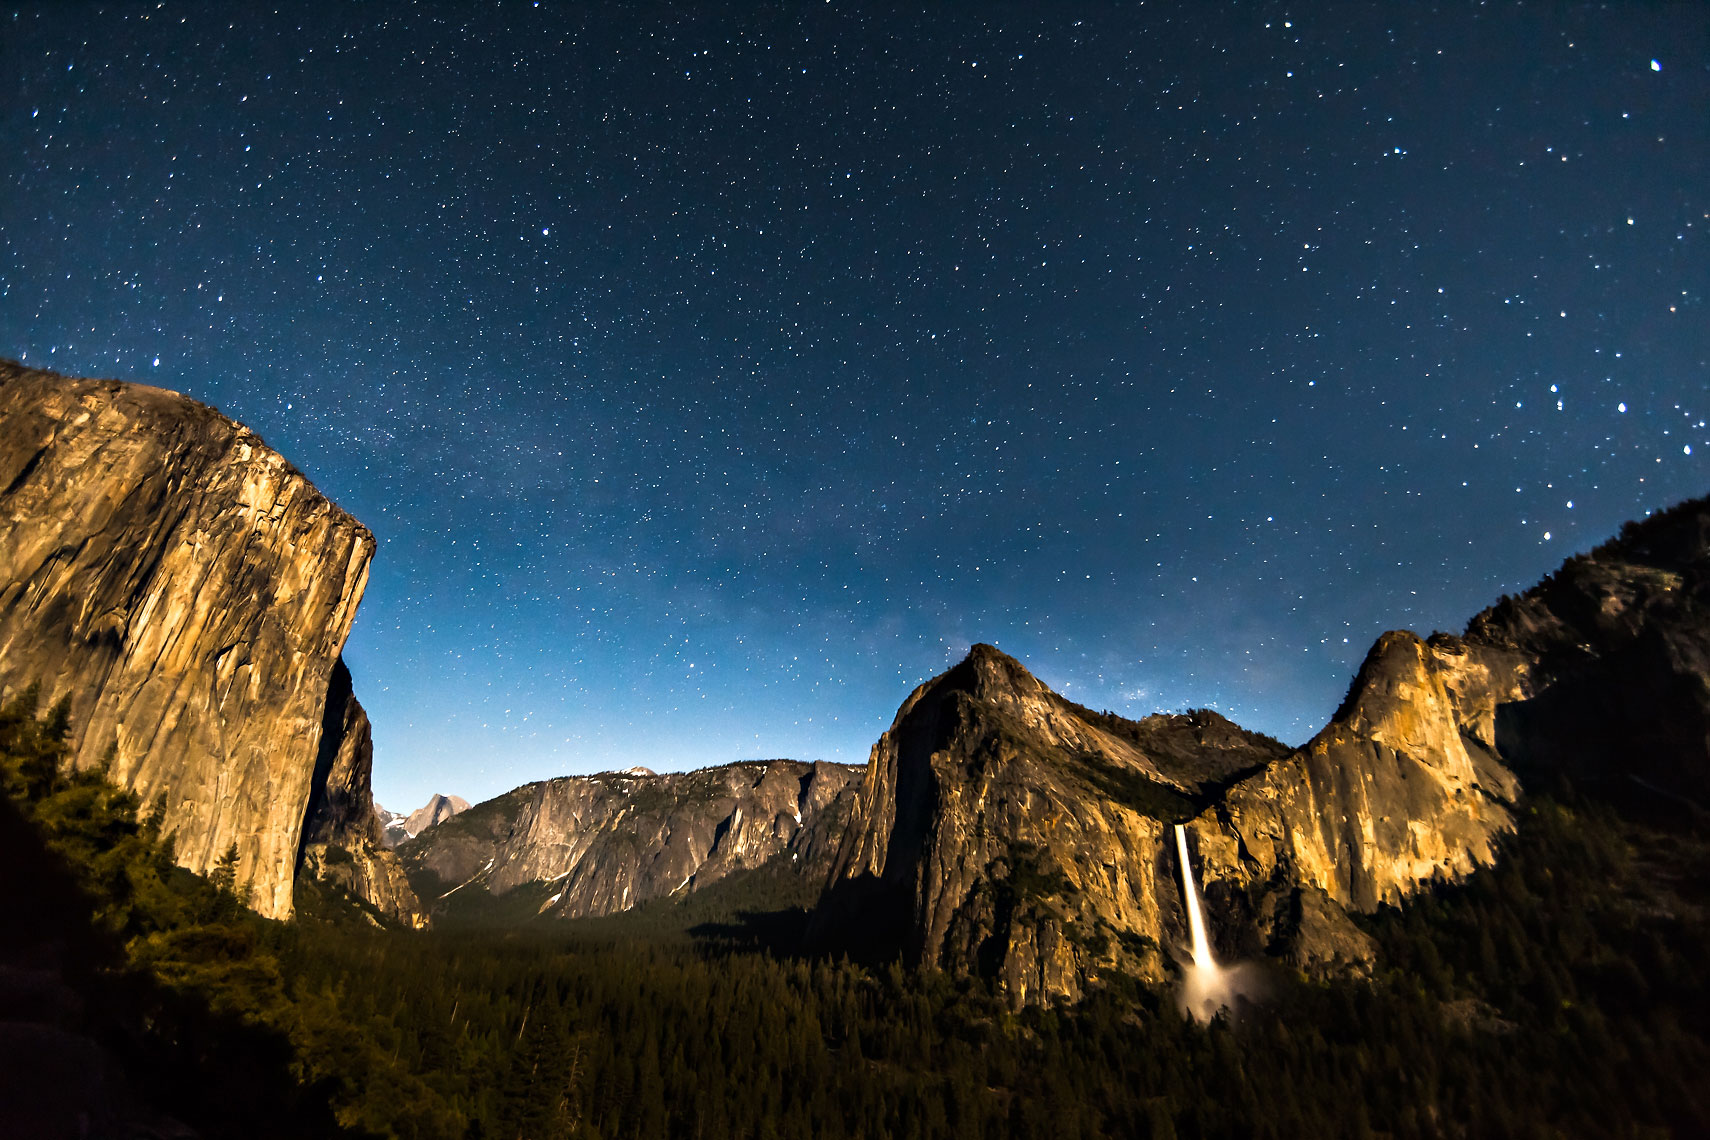 Celestial Yosemite Valley